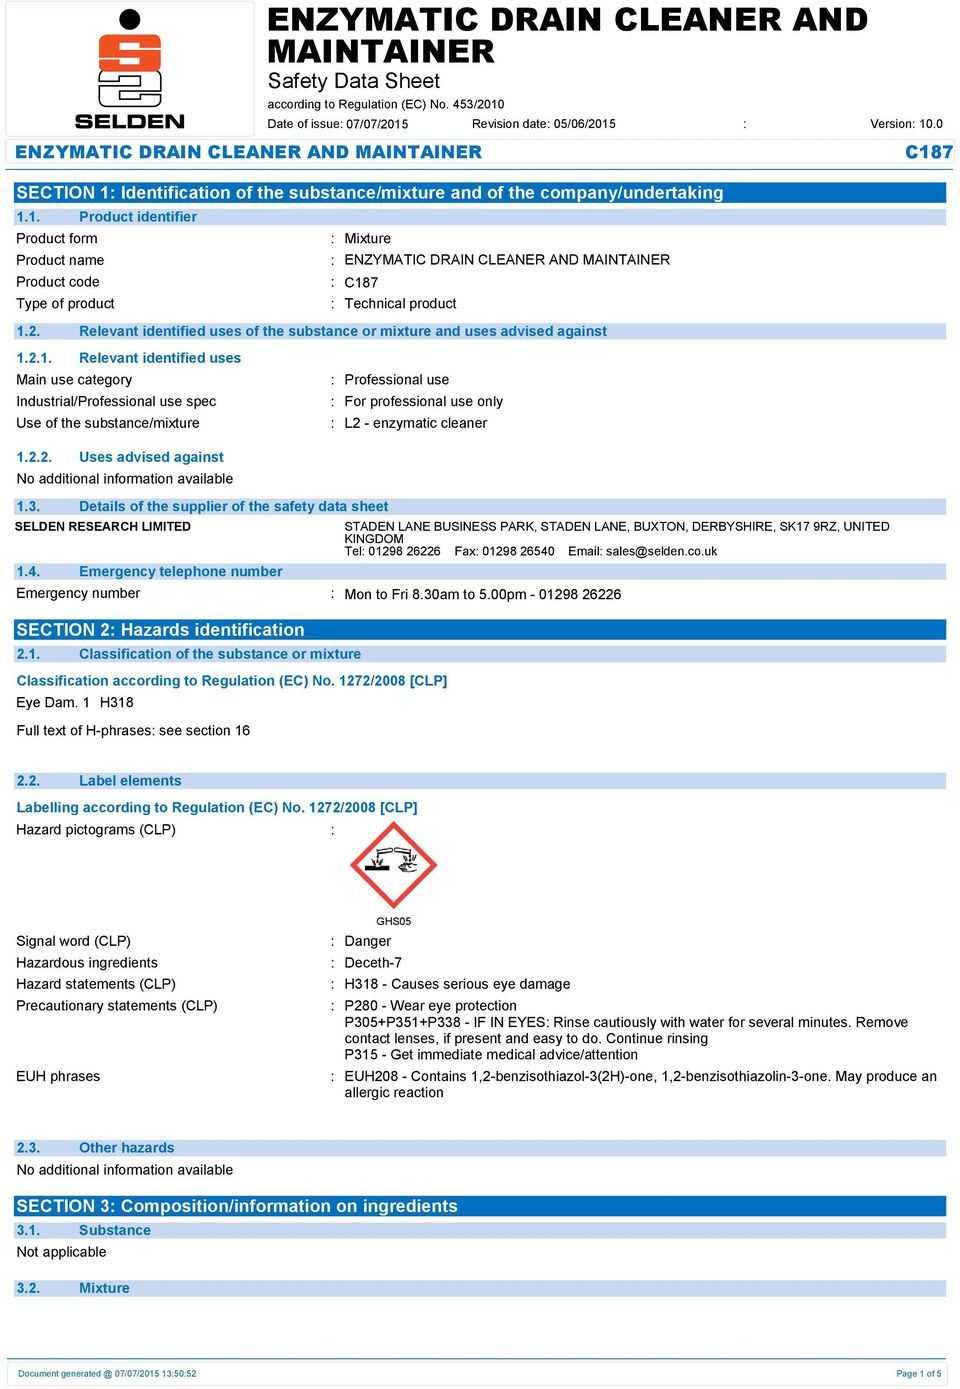 3. Details of the supplier of the safety data sheet SELDEN RESEARCH LIMITED 1.